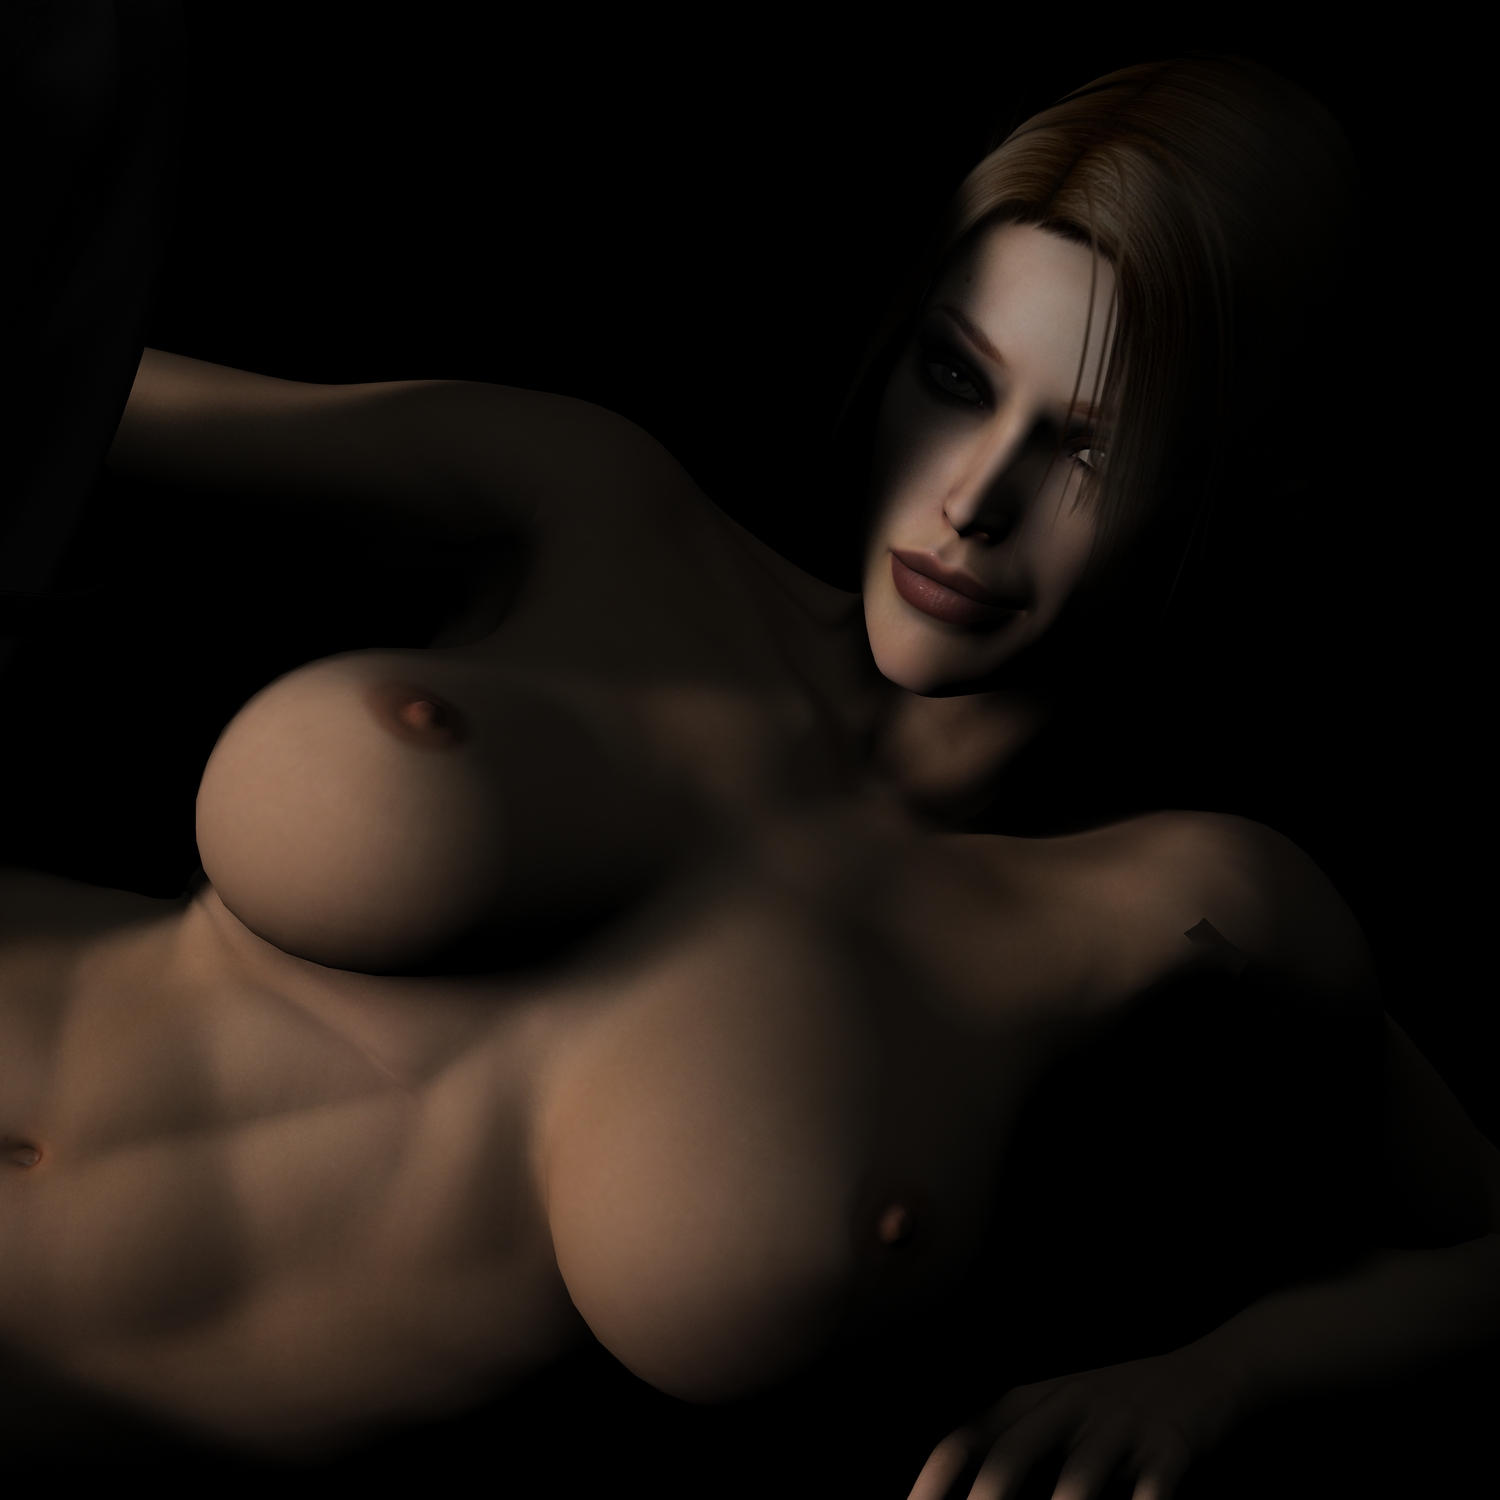 Lara croft fucked by monsters 3gp prons sexual gallery